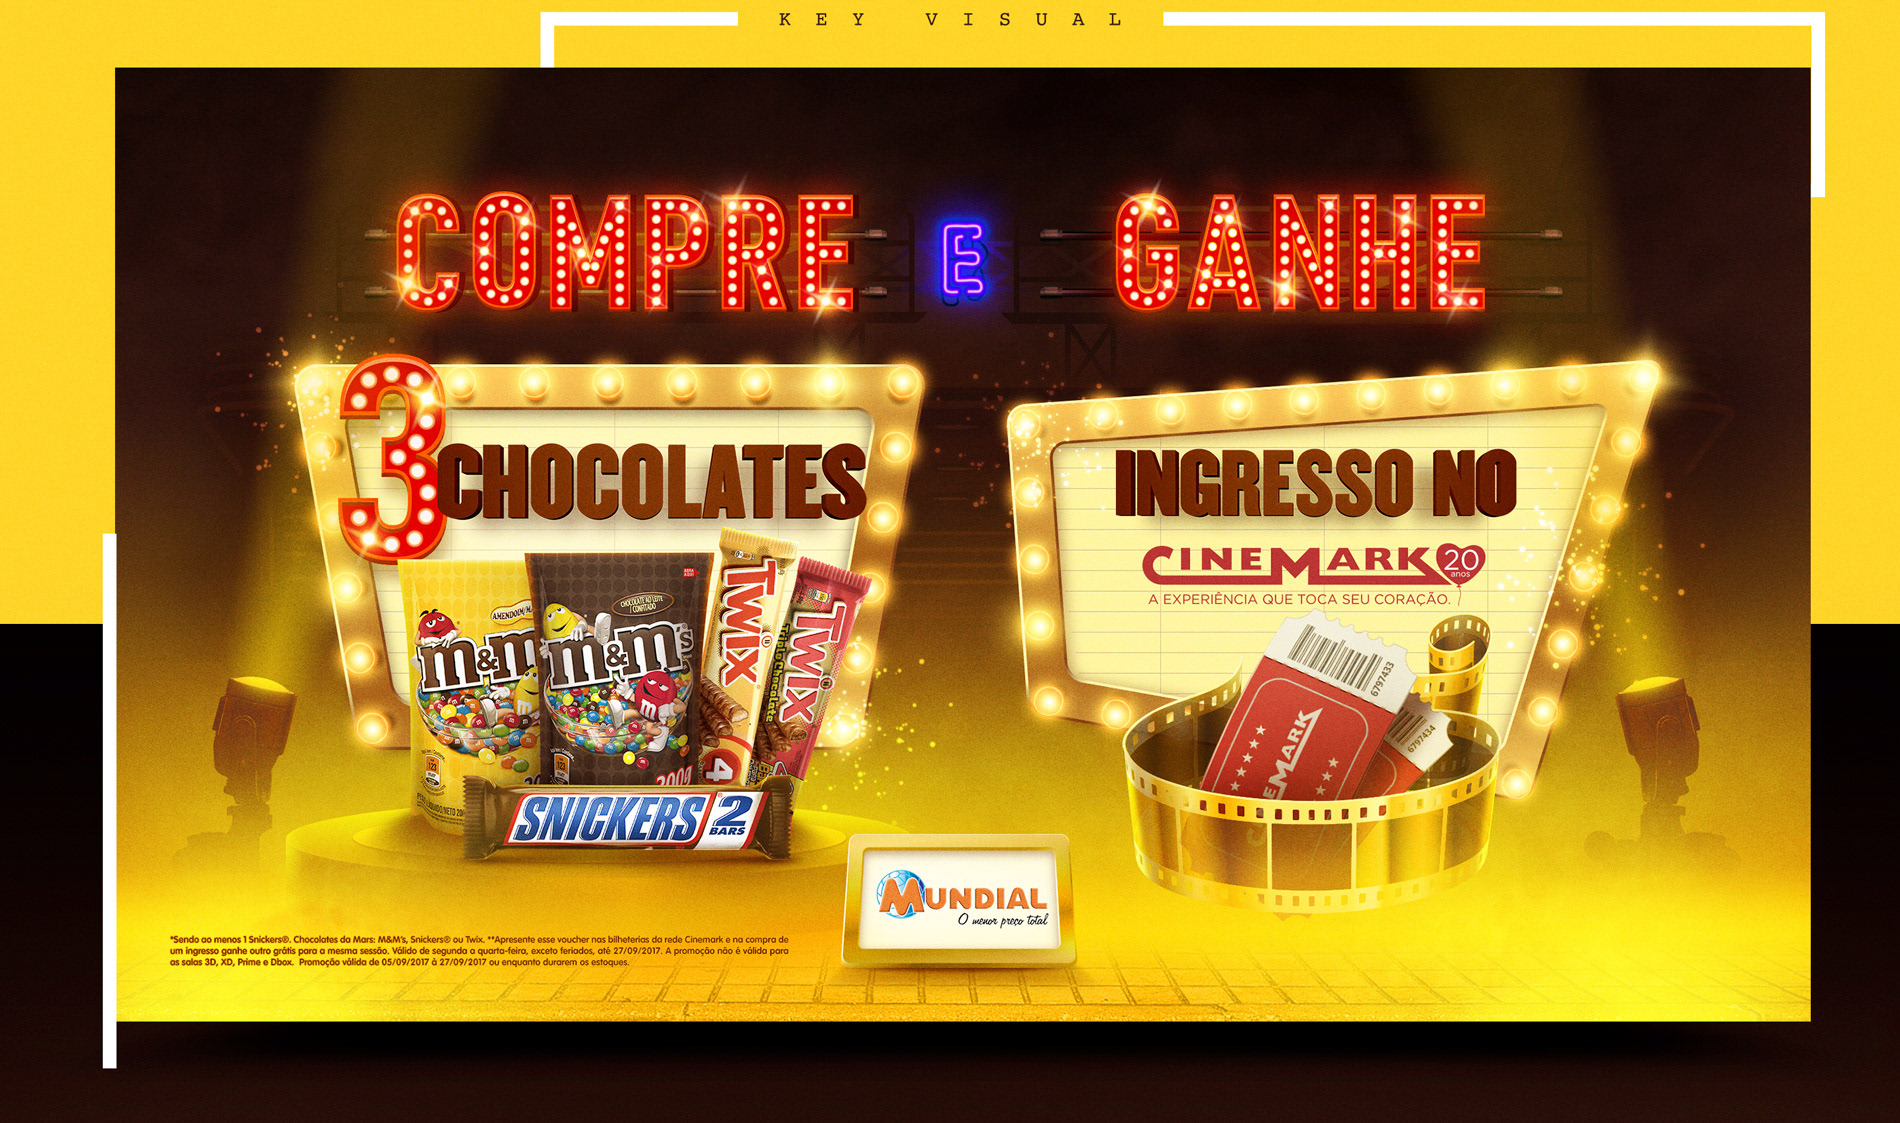 Mars & Cinemark • Promoção Grocery on Behance